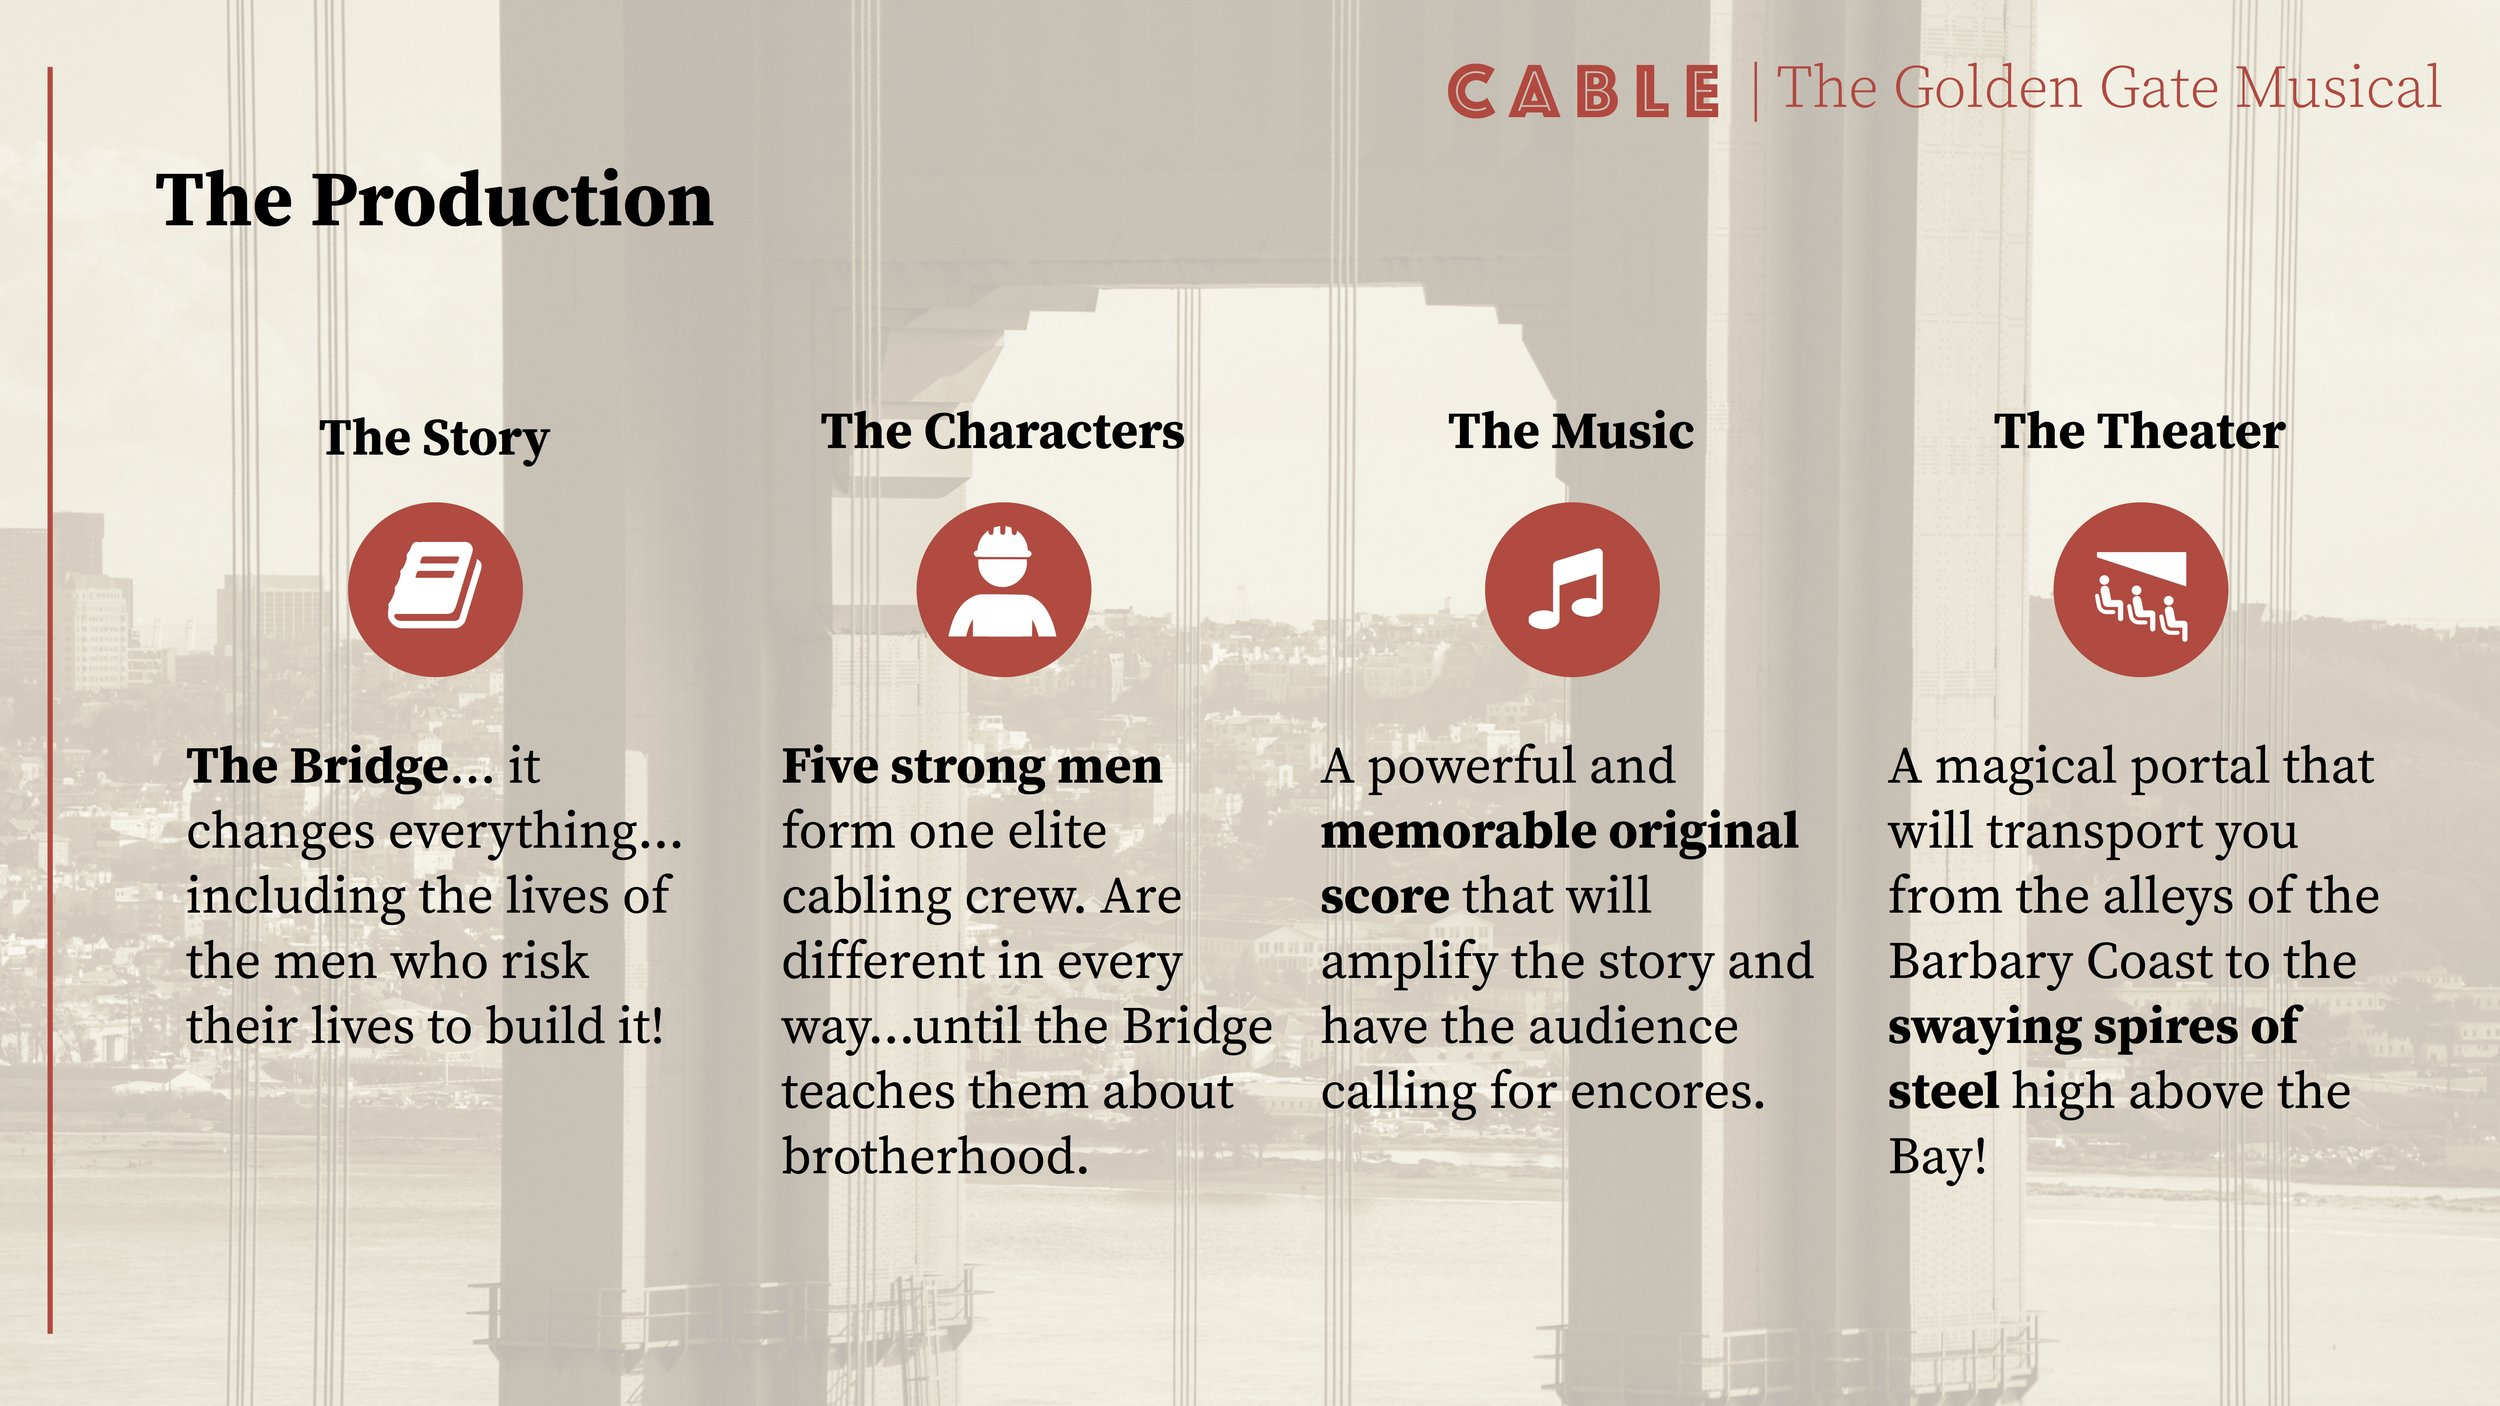 Cable, The Musical Pitch Deck   Designed for a company pitching investors for financial backing. (Presentation modified to remove sensitive information)